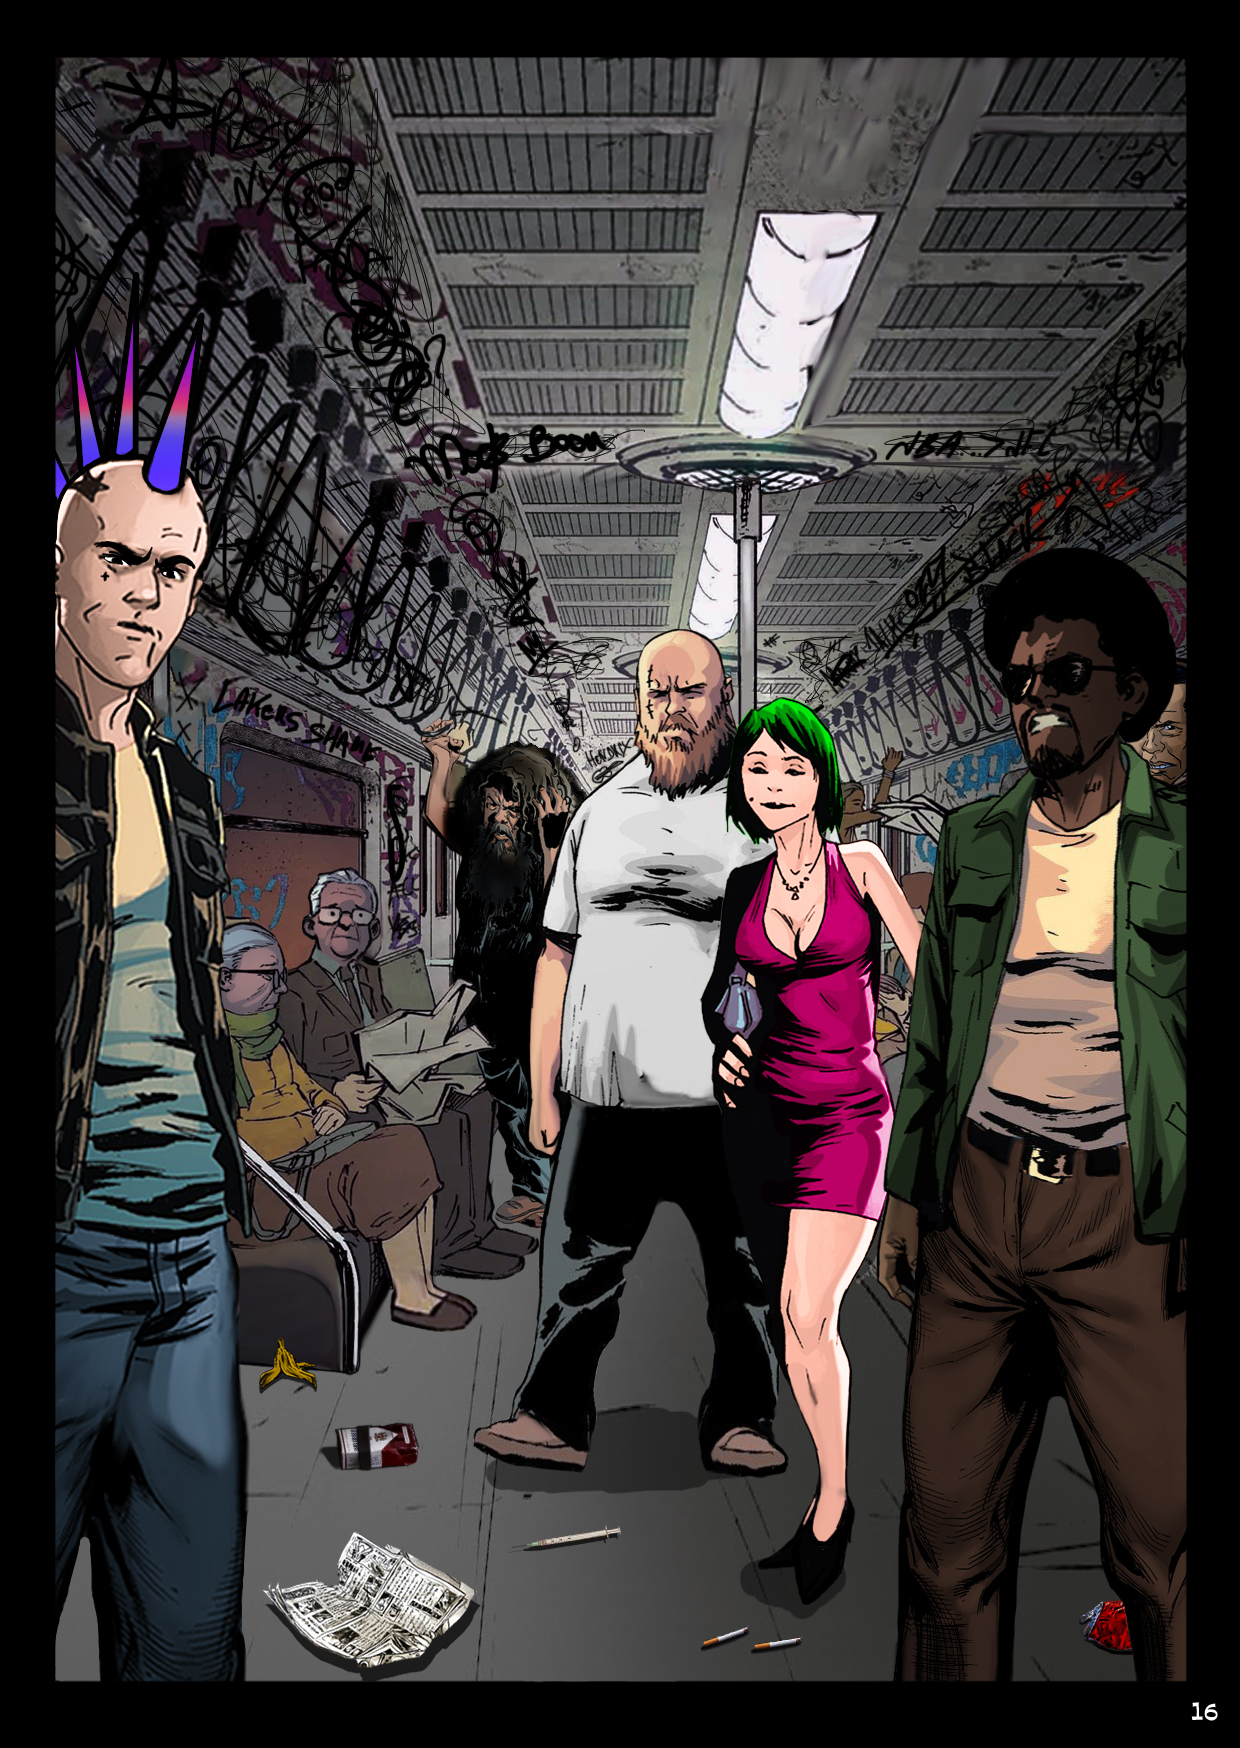 A cast of curious and sinister characters aboard the subway look back at Bobby.